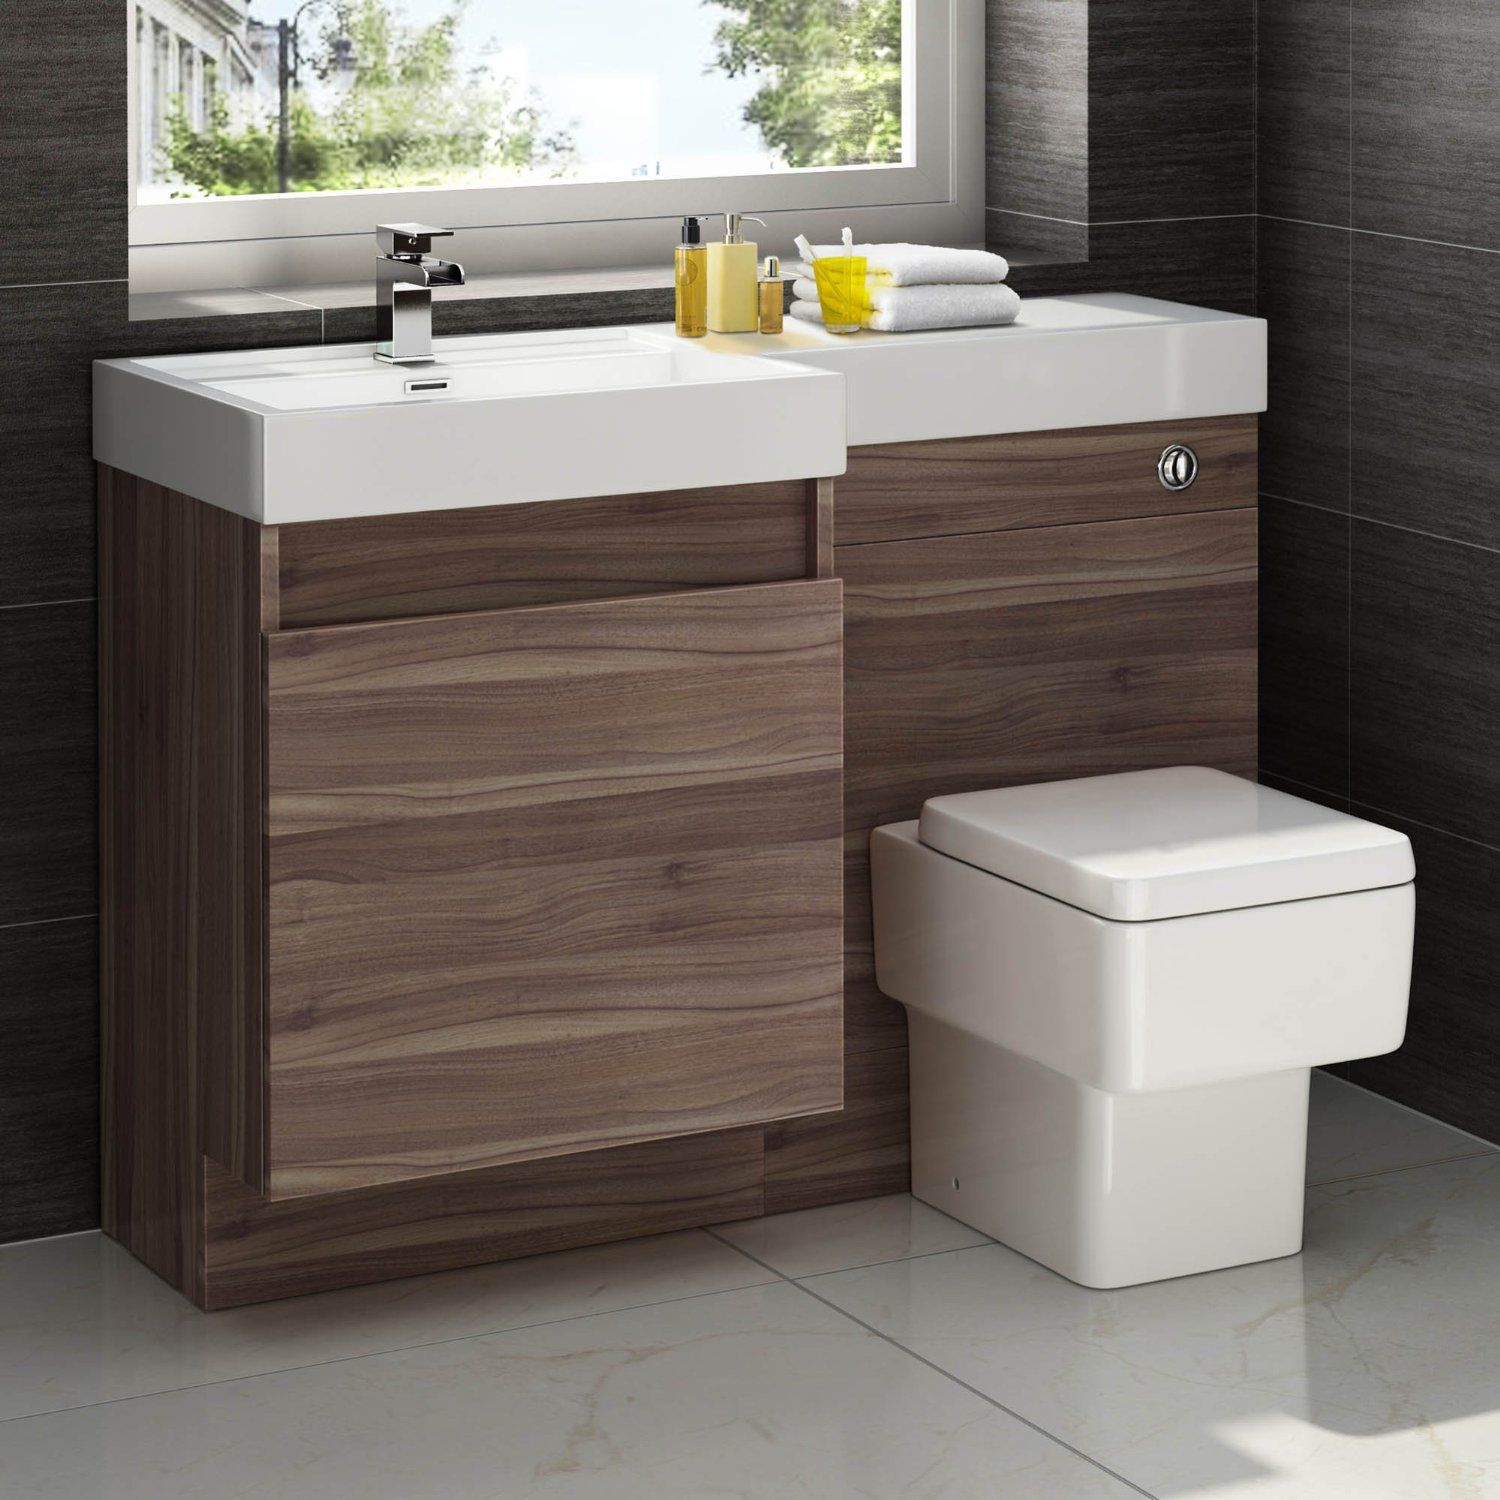 1200mm Walnut Vanity Unit Square Toilet Bathroom Sink Left within size 1500 X 1500